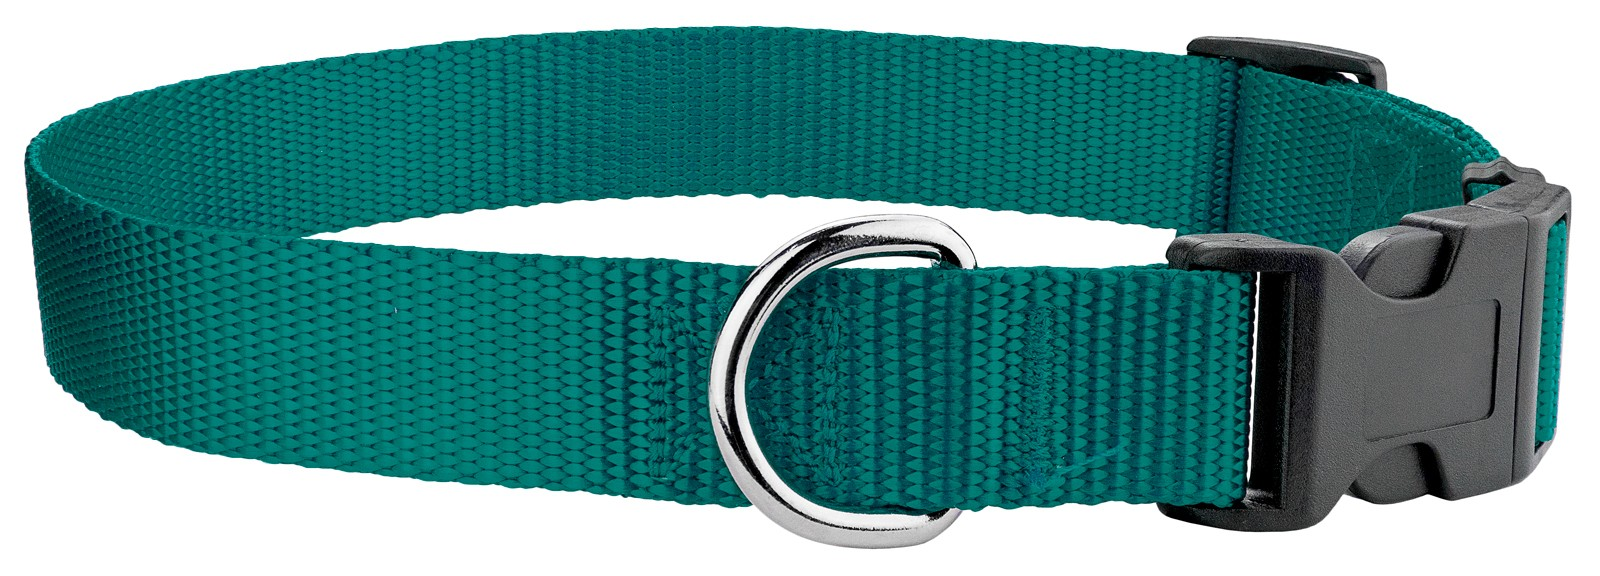 Half Check Dog Collars With Quick Release